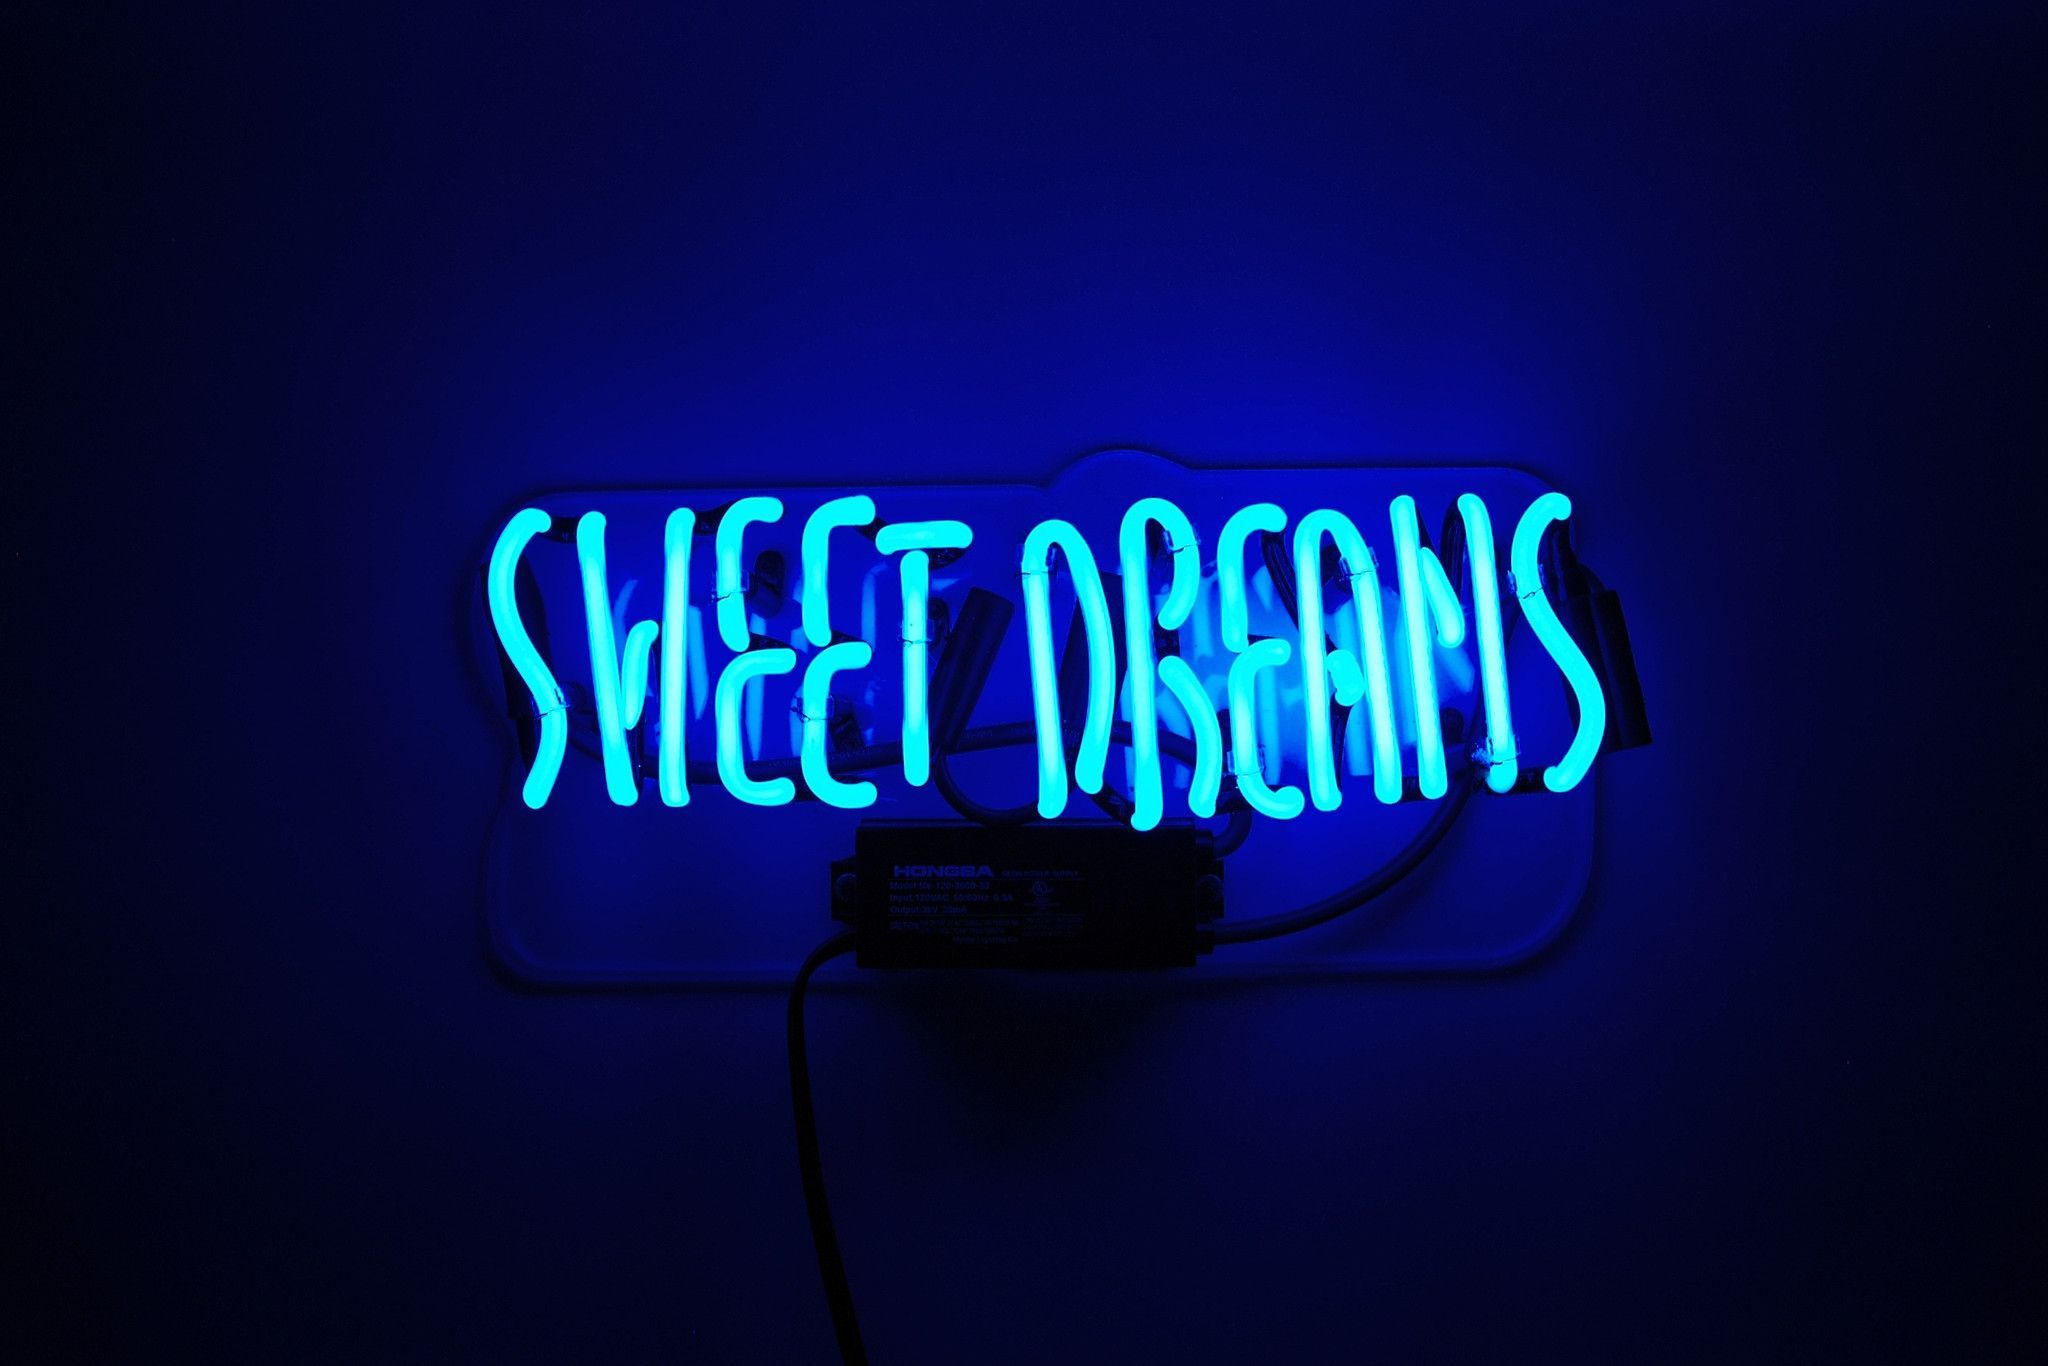 Neon Bedroom Sweet Dreams Neon Sign Beautiful Sleep And Blue White Bedrooms